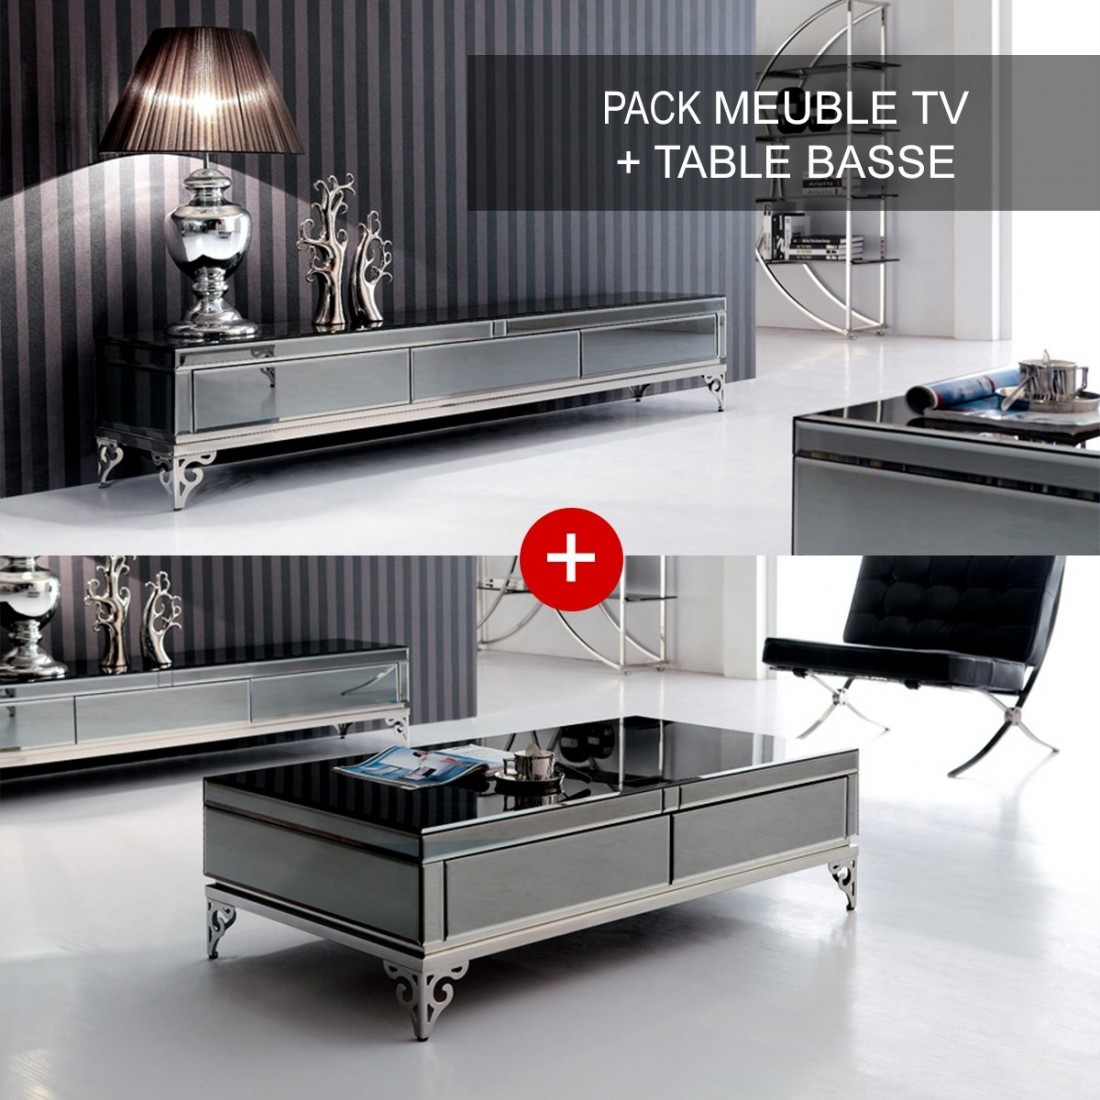 Ensemble Meuble T L Et Table Basse El Gante # Ensemble Meuble Tv Table Basse Design